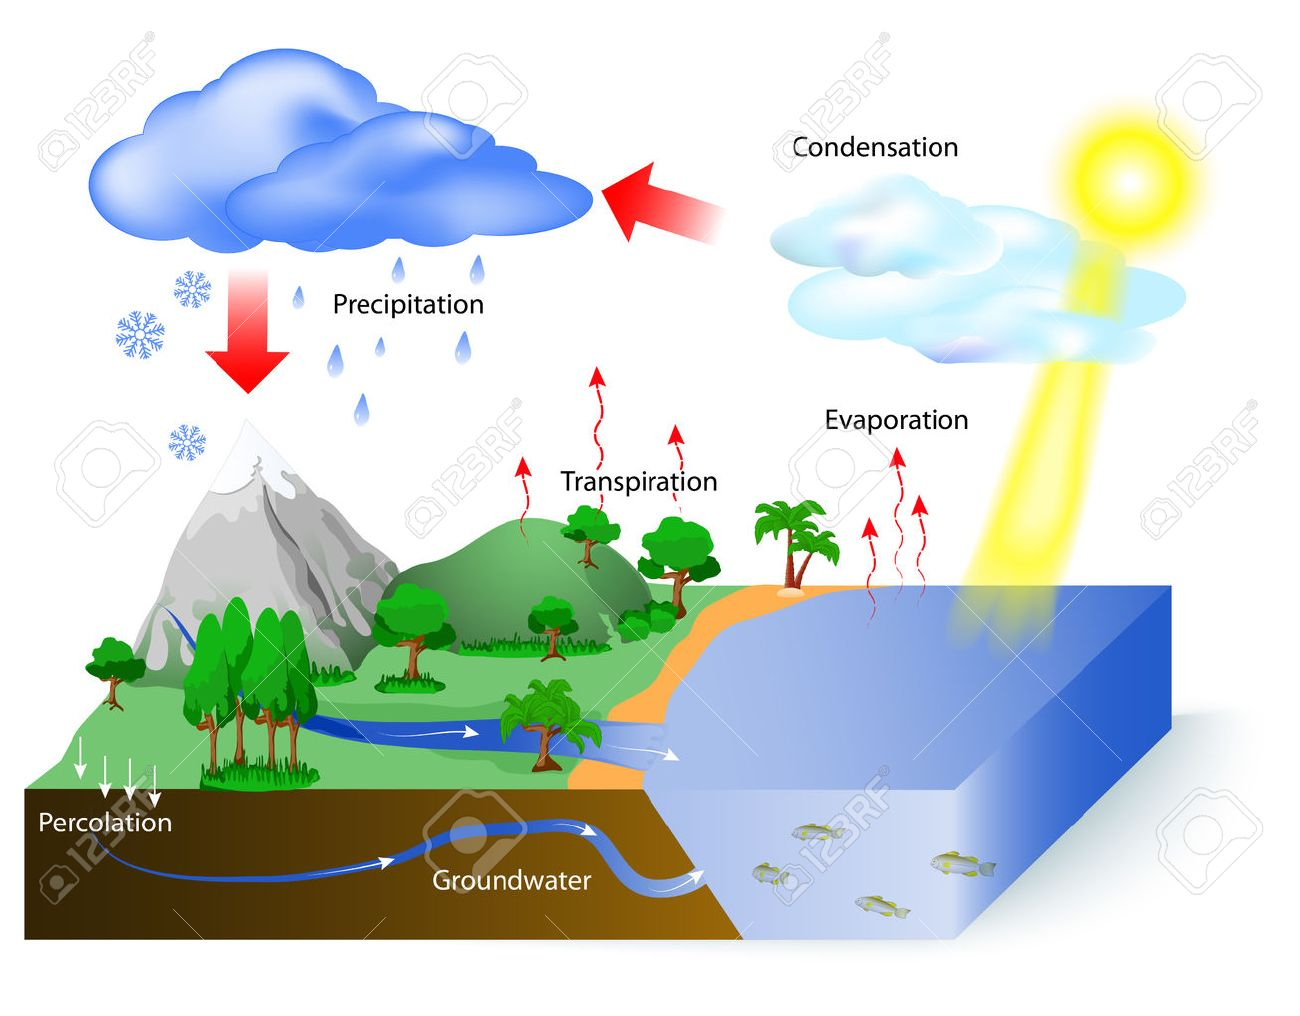 Water cycle diagram the sun which drives the water cycle heats water cycle diagram the sun which drives the water cycle heats water in ccuart Image collections